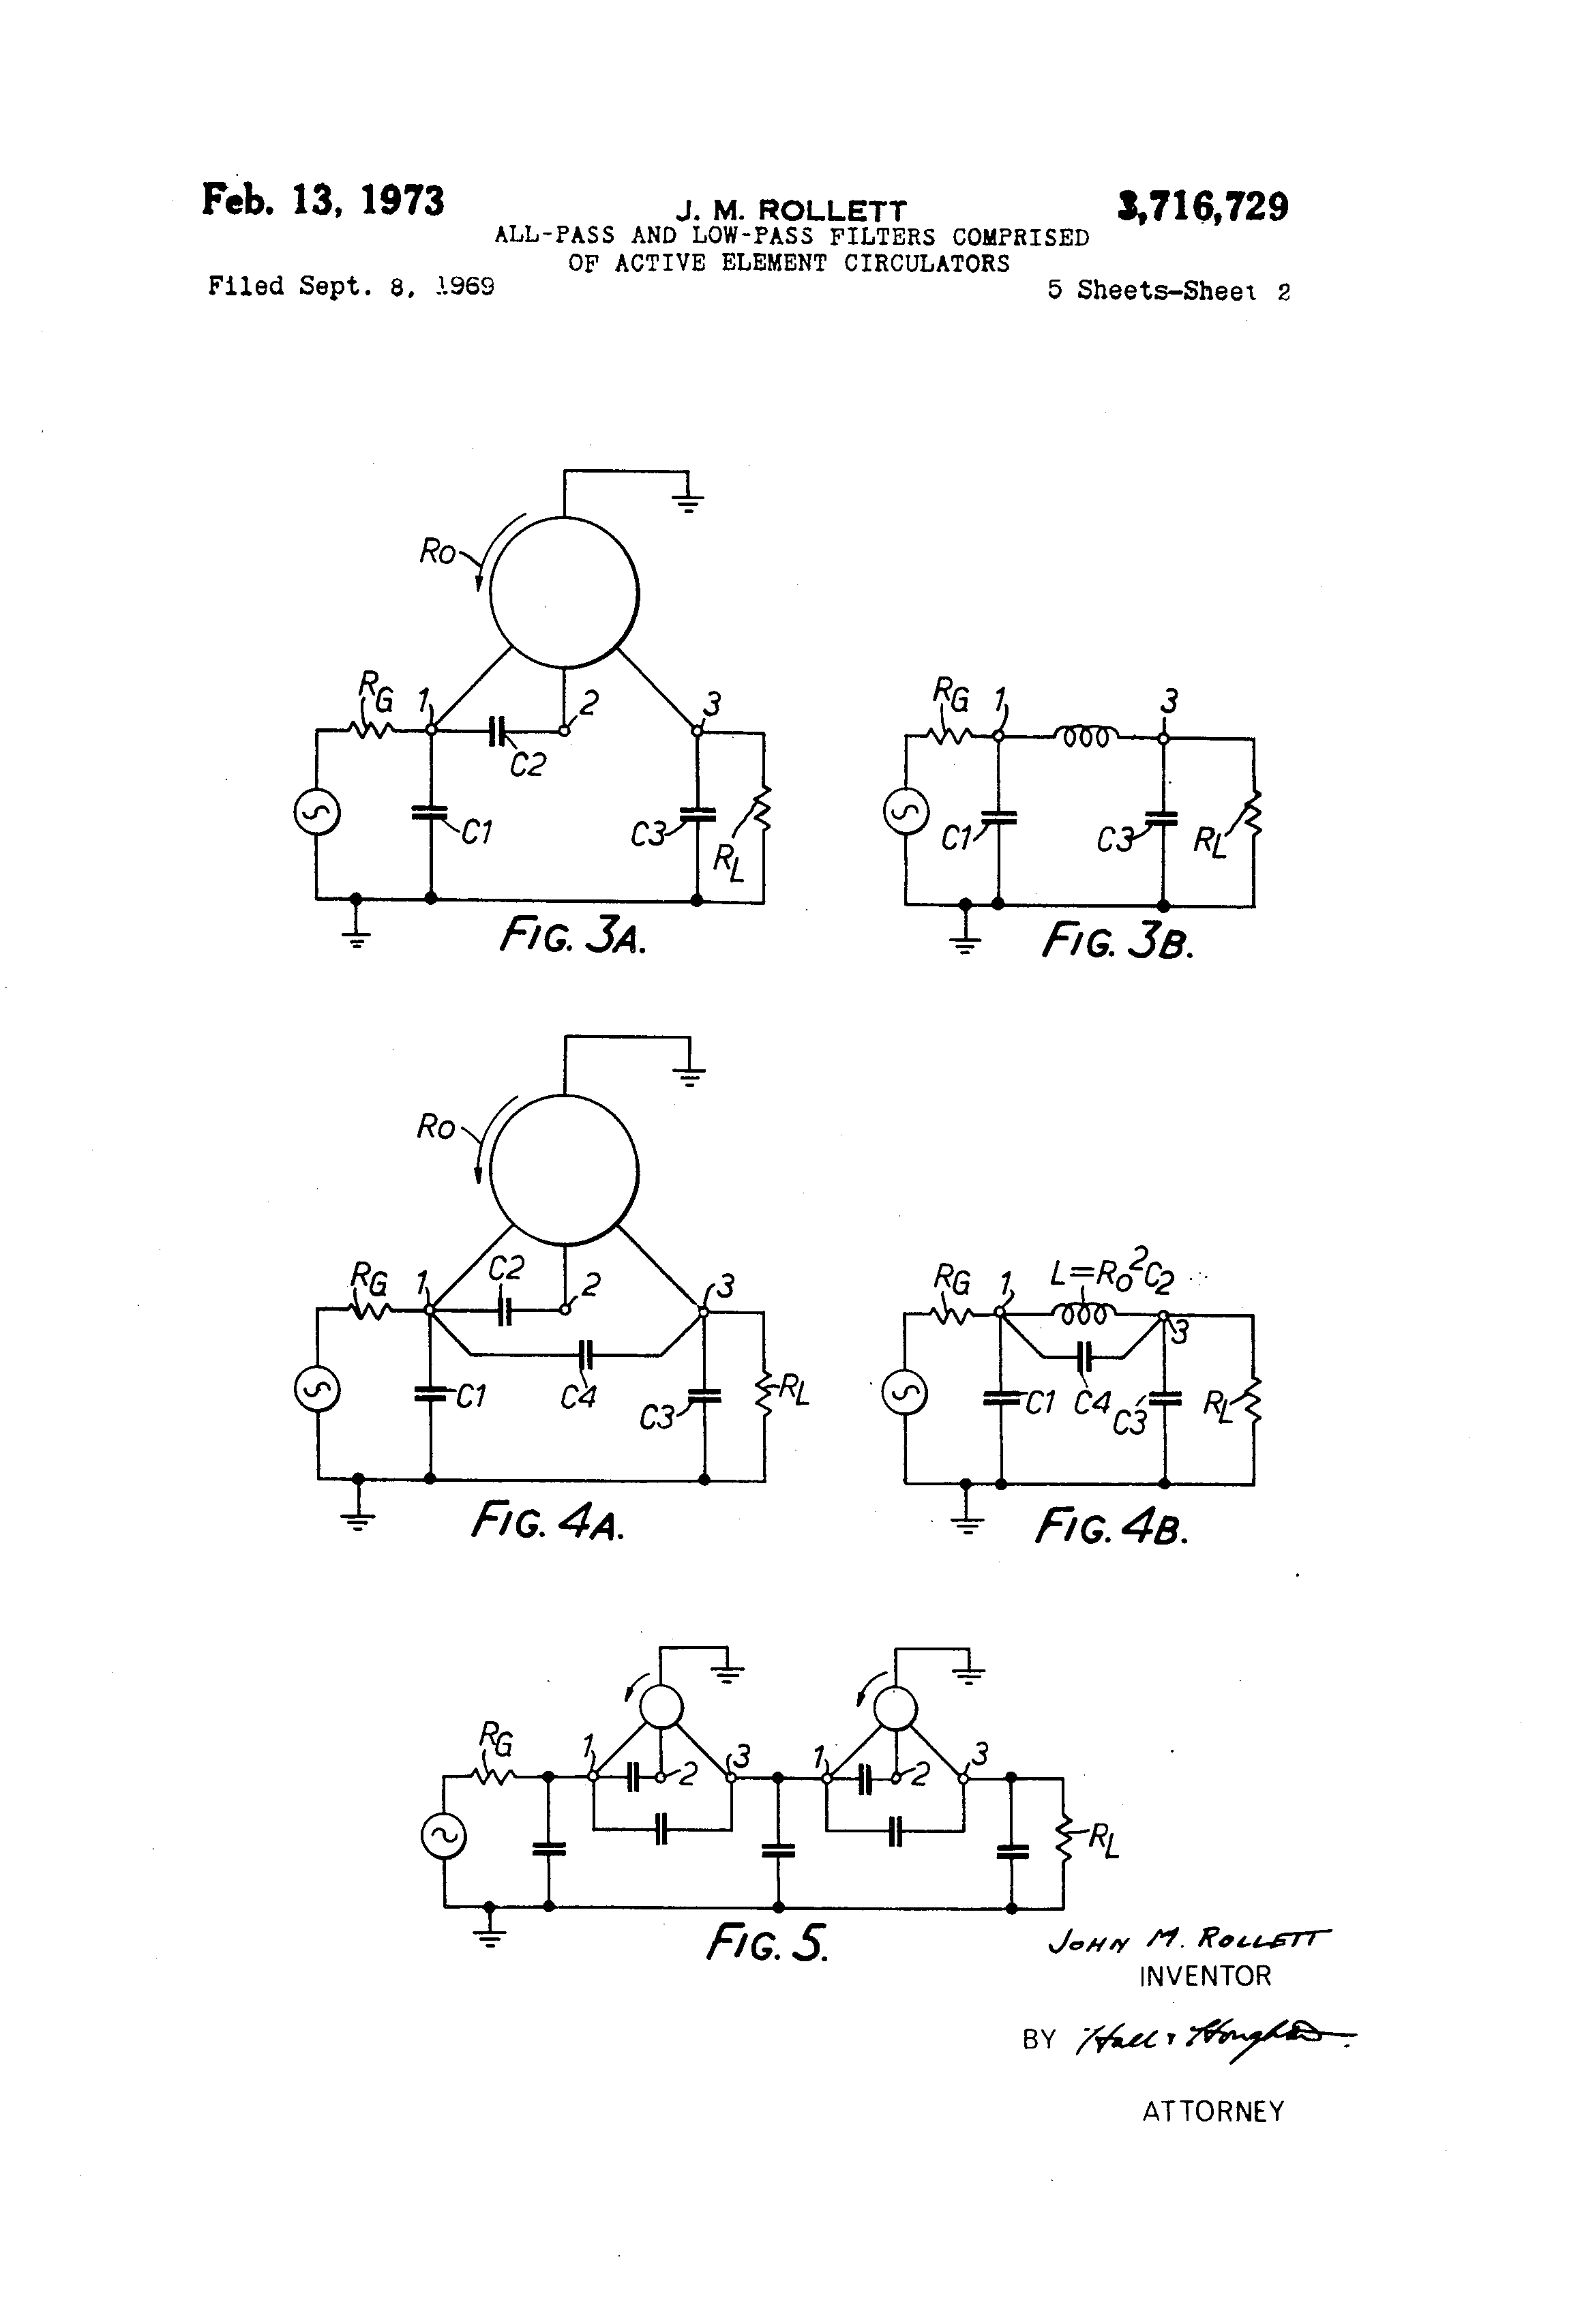 Brevet Us3716729 All Pass And Low Filter Comprised Of Active Order Circuit Is Shown In The Figure This Element Circulators Google Brevets